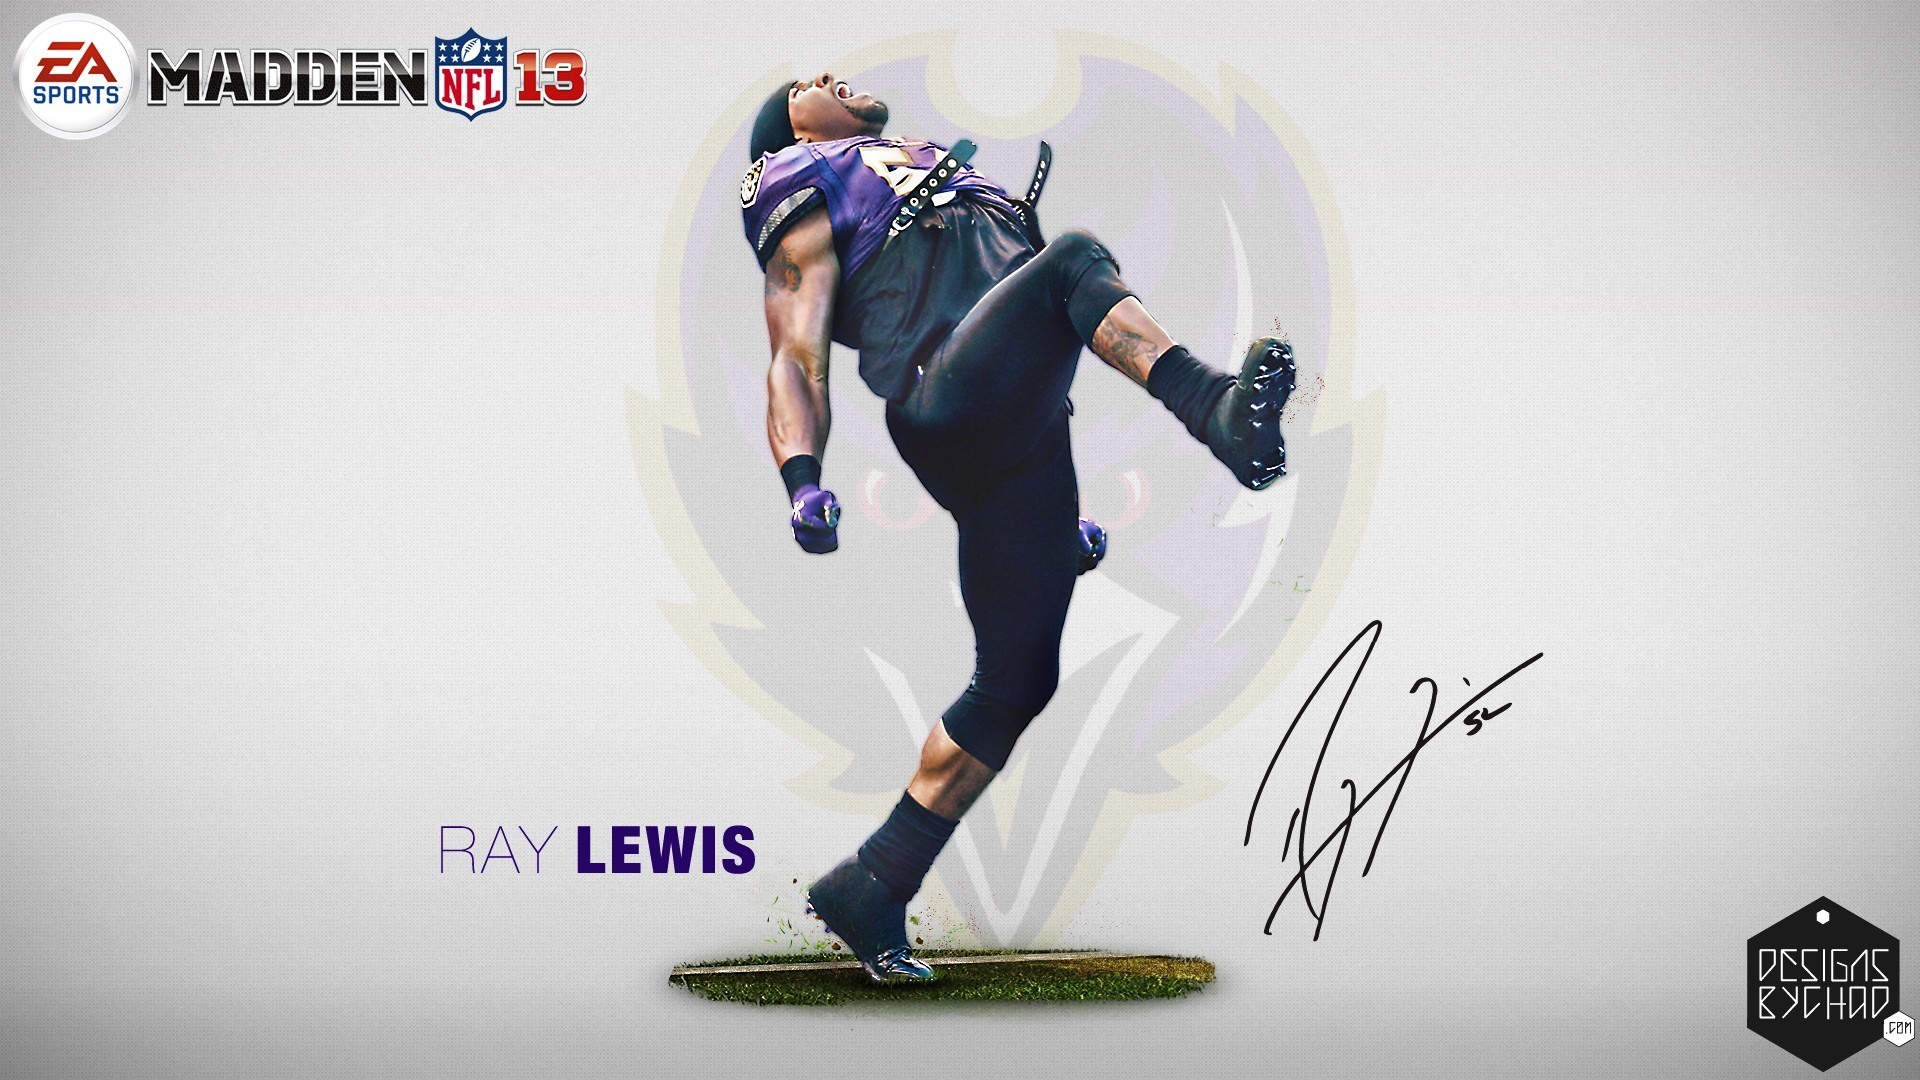 undefined Ray Lewis Wallpapers (43 Wallpapers)   Adorable Wallpapers    Wallpapers   Pinterest   Ray lewis and Wallpaper